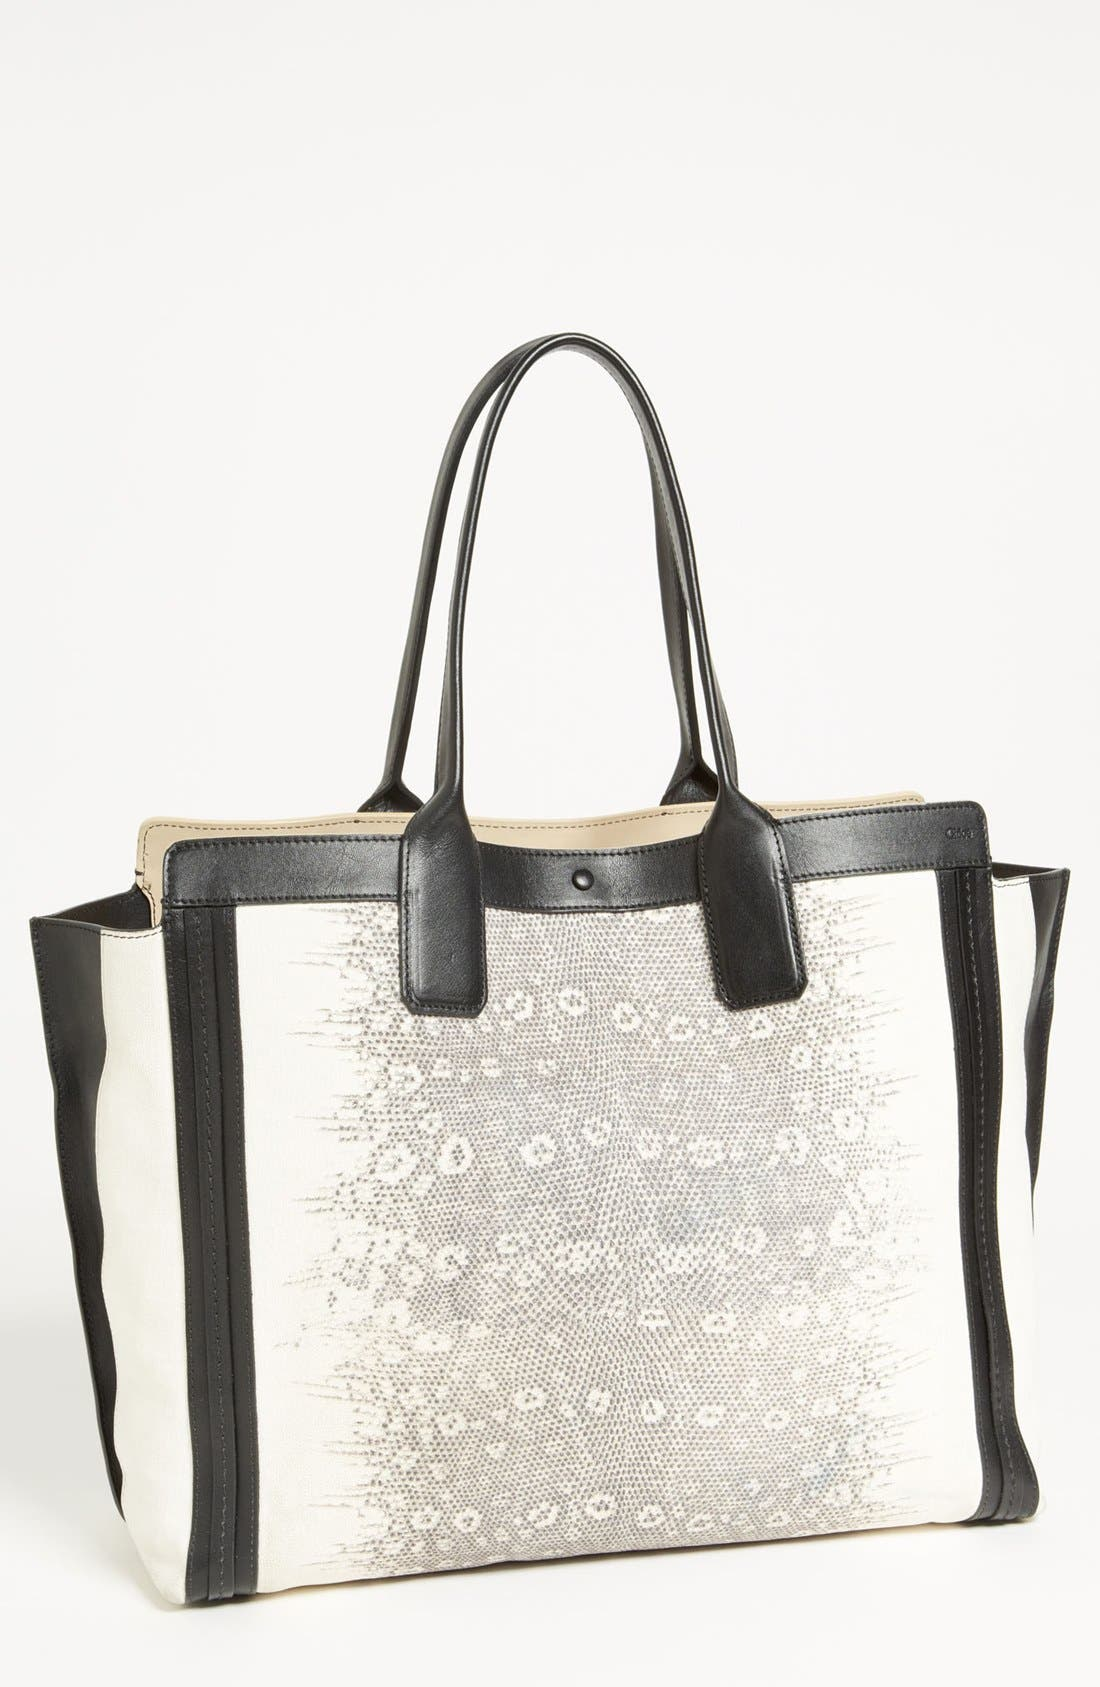 Alternate Image 1 Selected - Chloé 'Alison - Lizard' Printed Leather Tote